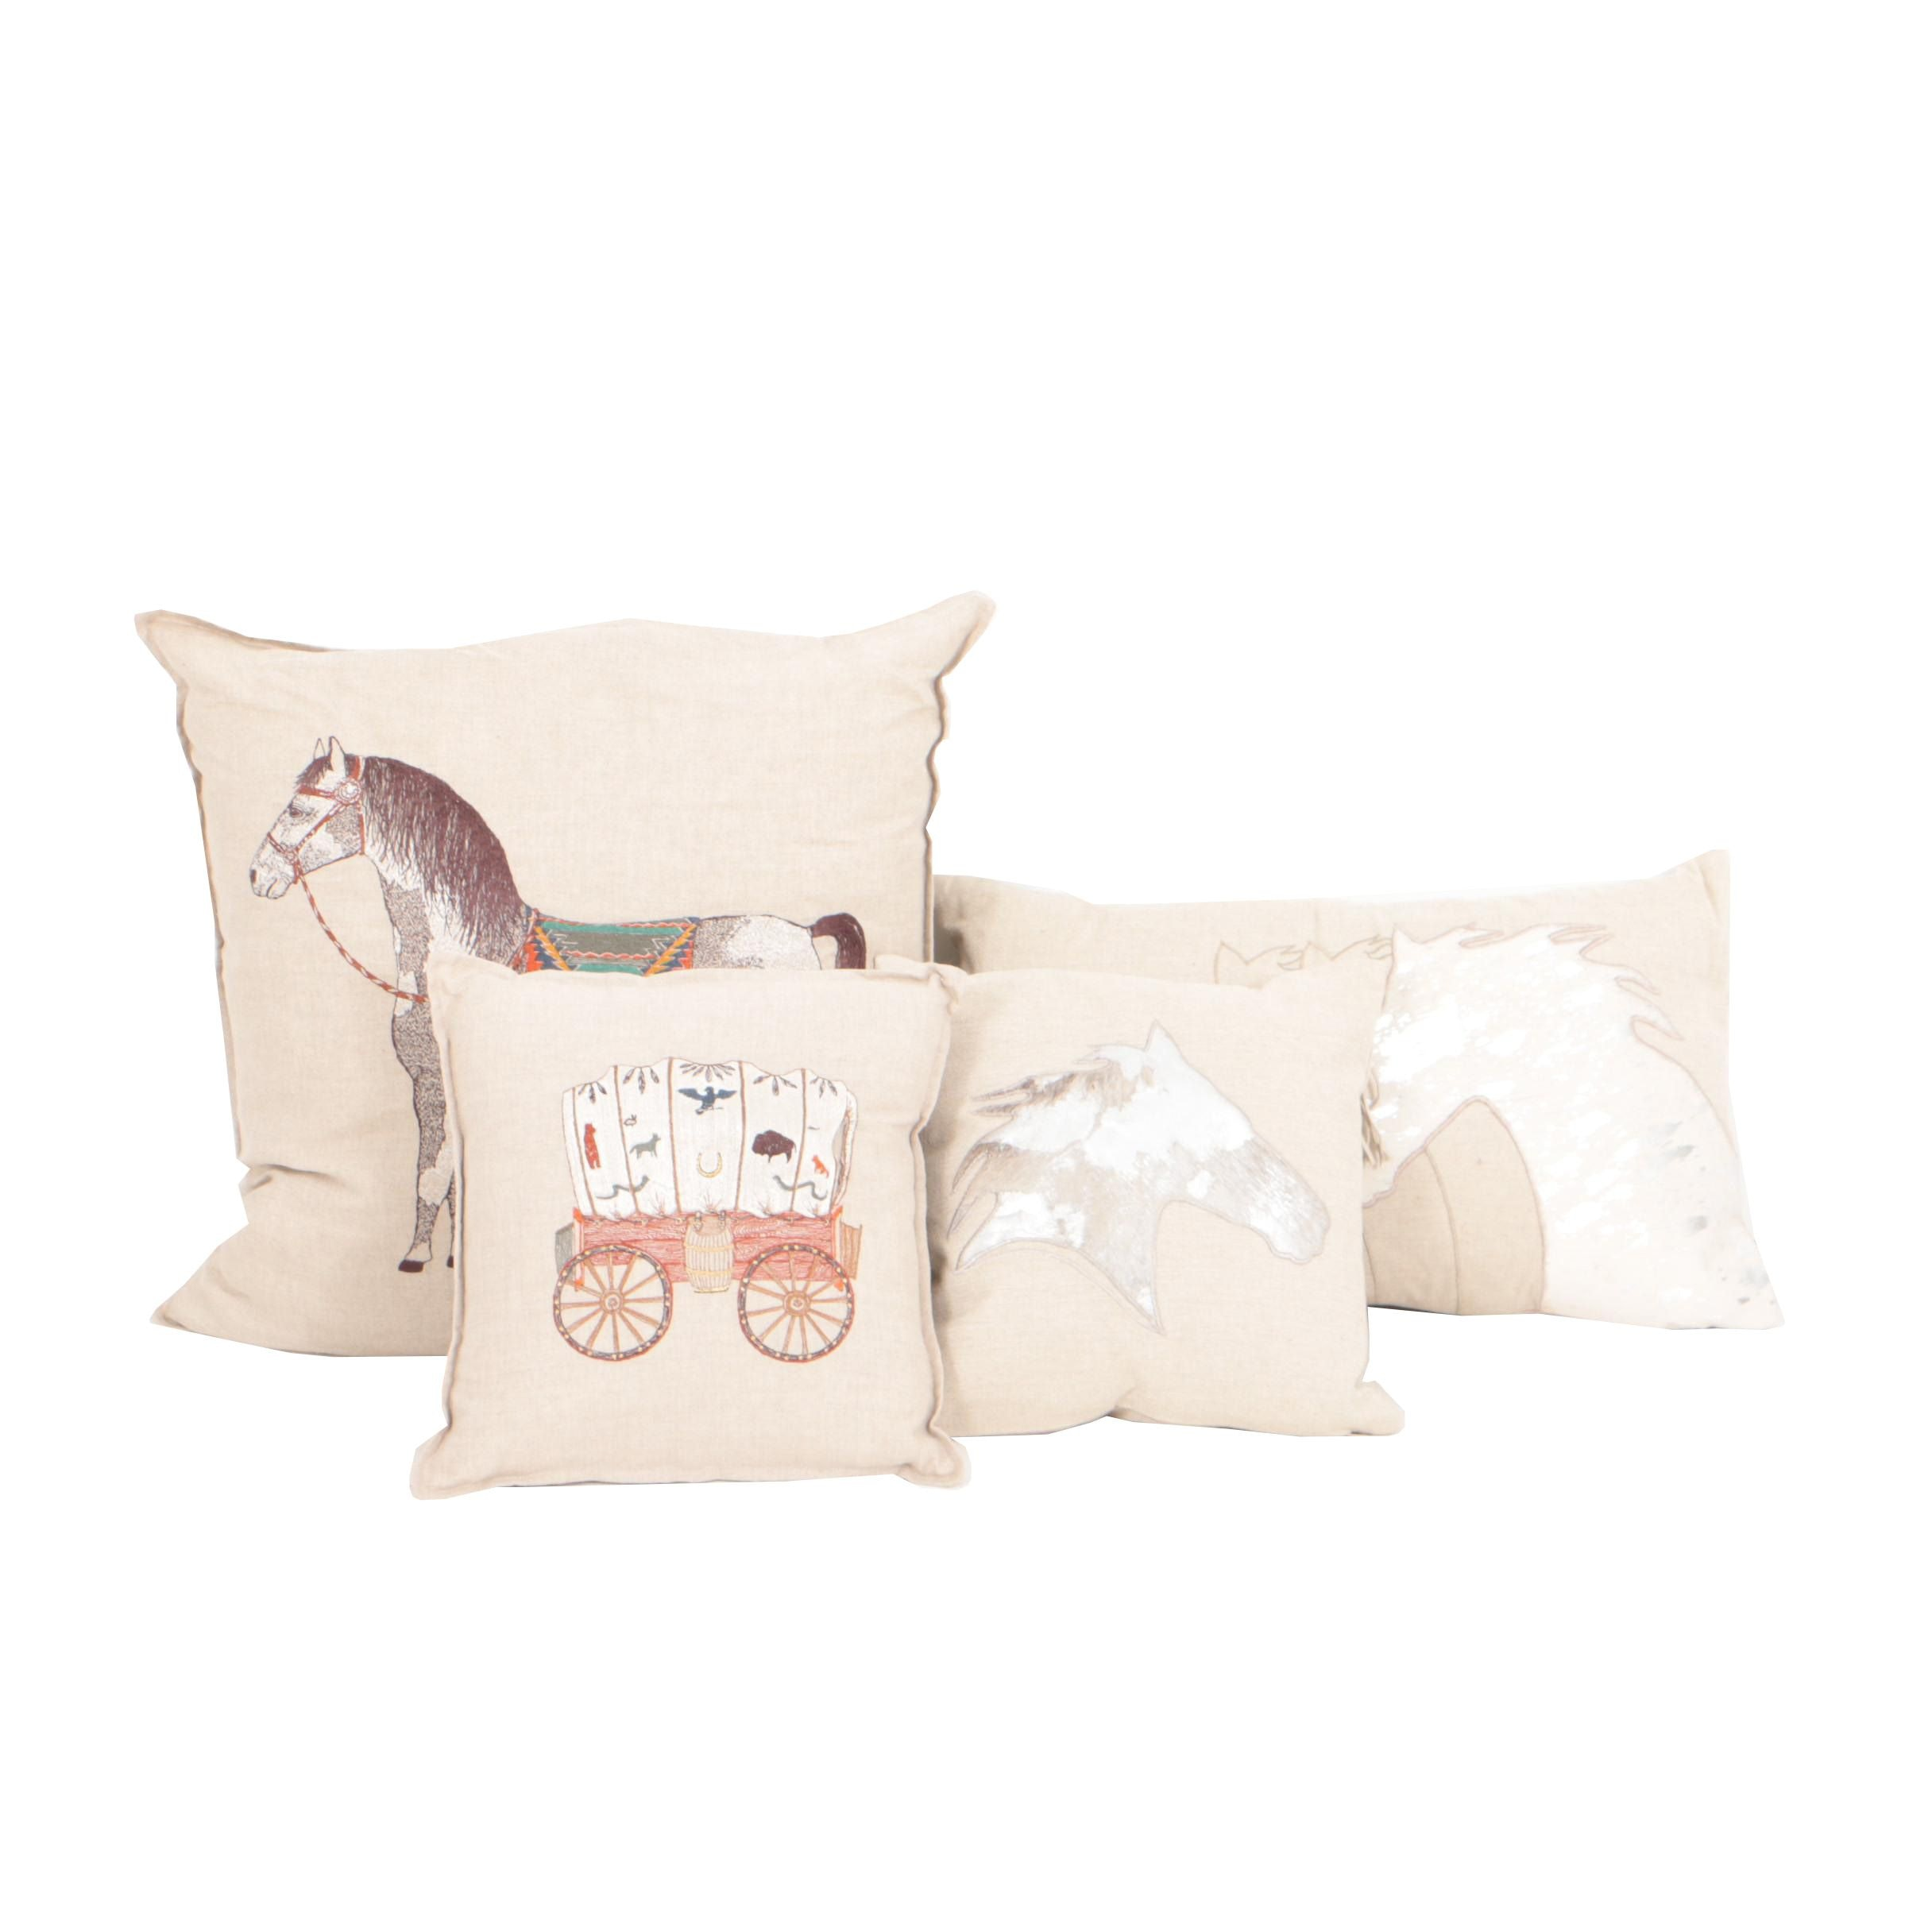 Four Linen Embroidered Throw Pillows Including Coral & Tusk